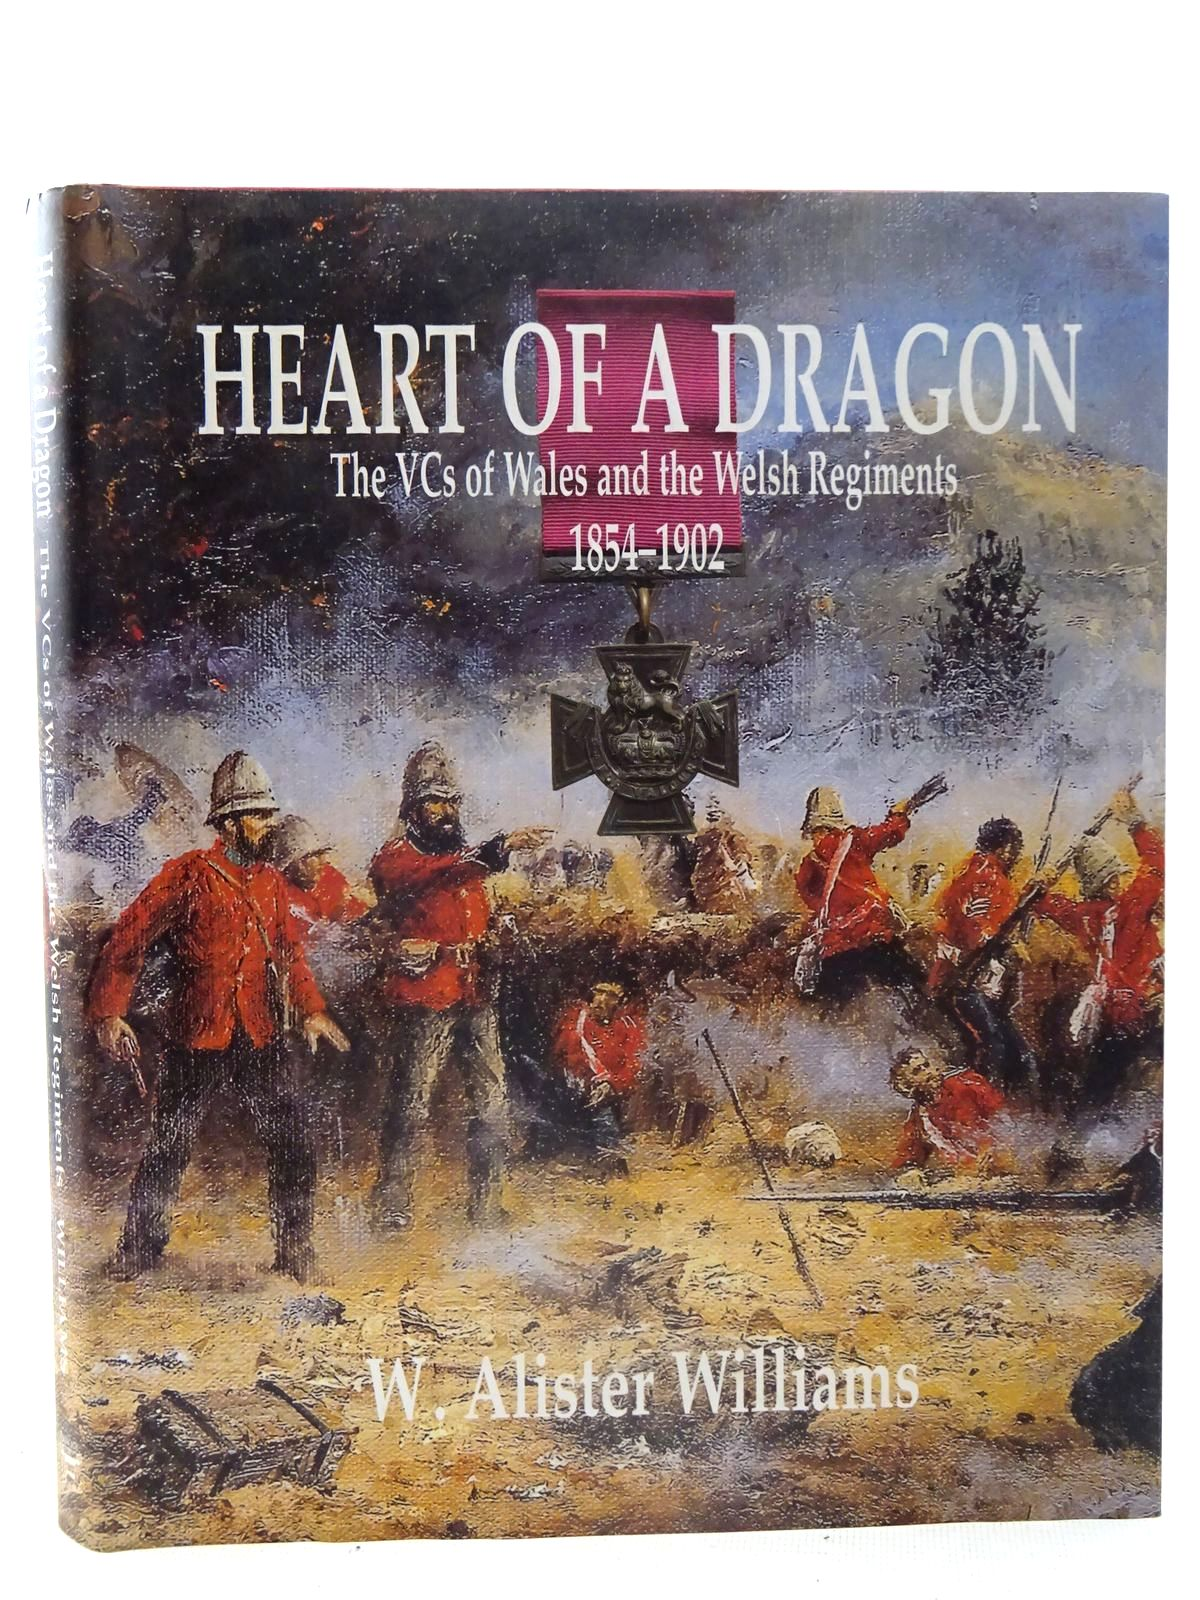 Photo of HEART OF A DRAGON THE VCS OF WALES AND THE WELSH REGIMENTS 1854-1902- Stock Number: 2126169